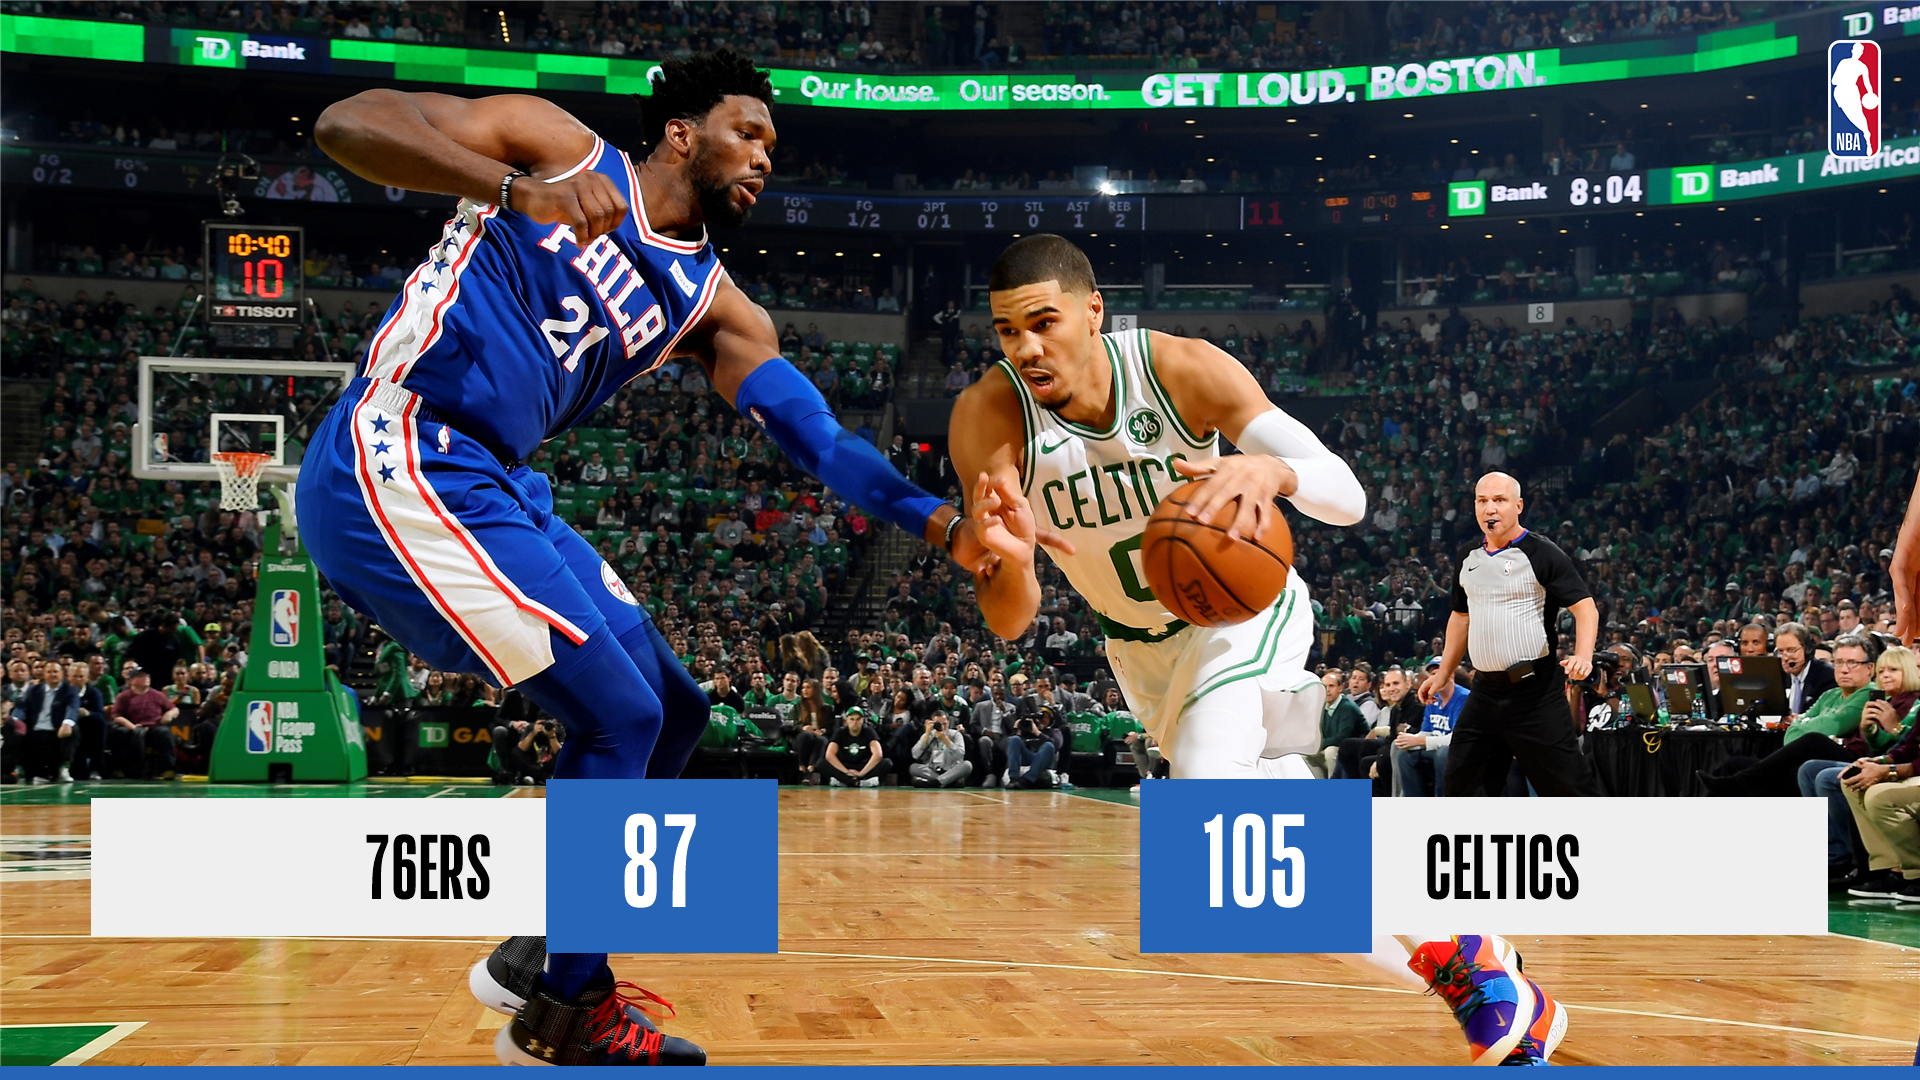 Sixers vs Celtics